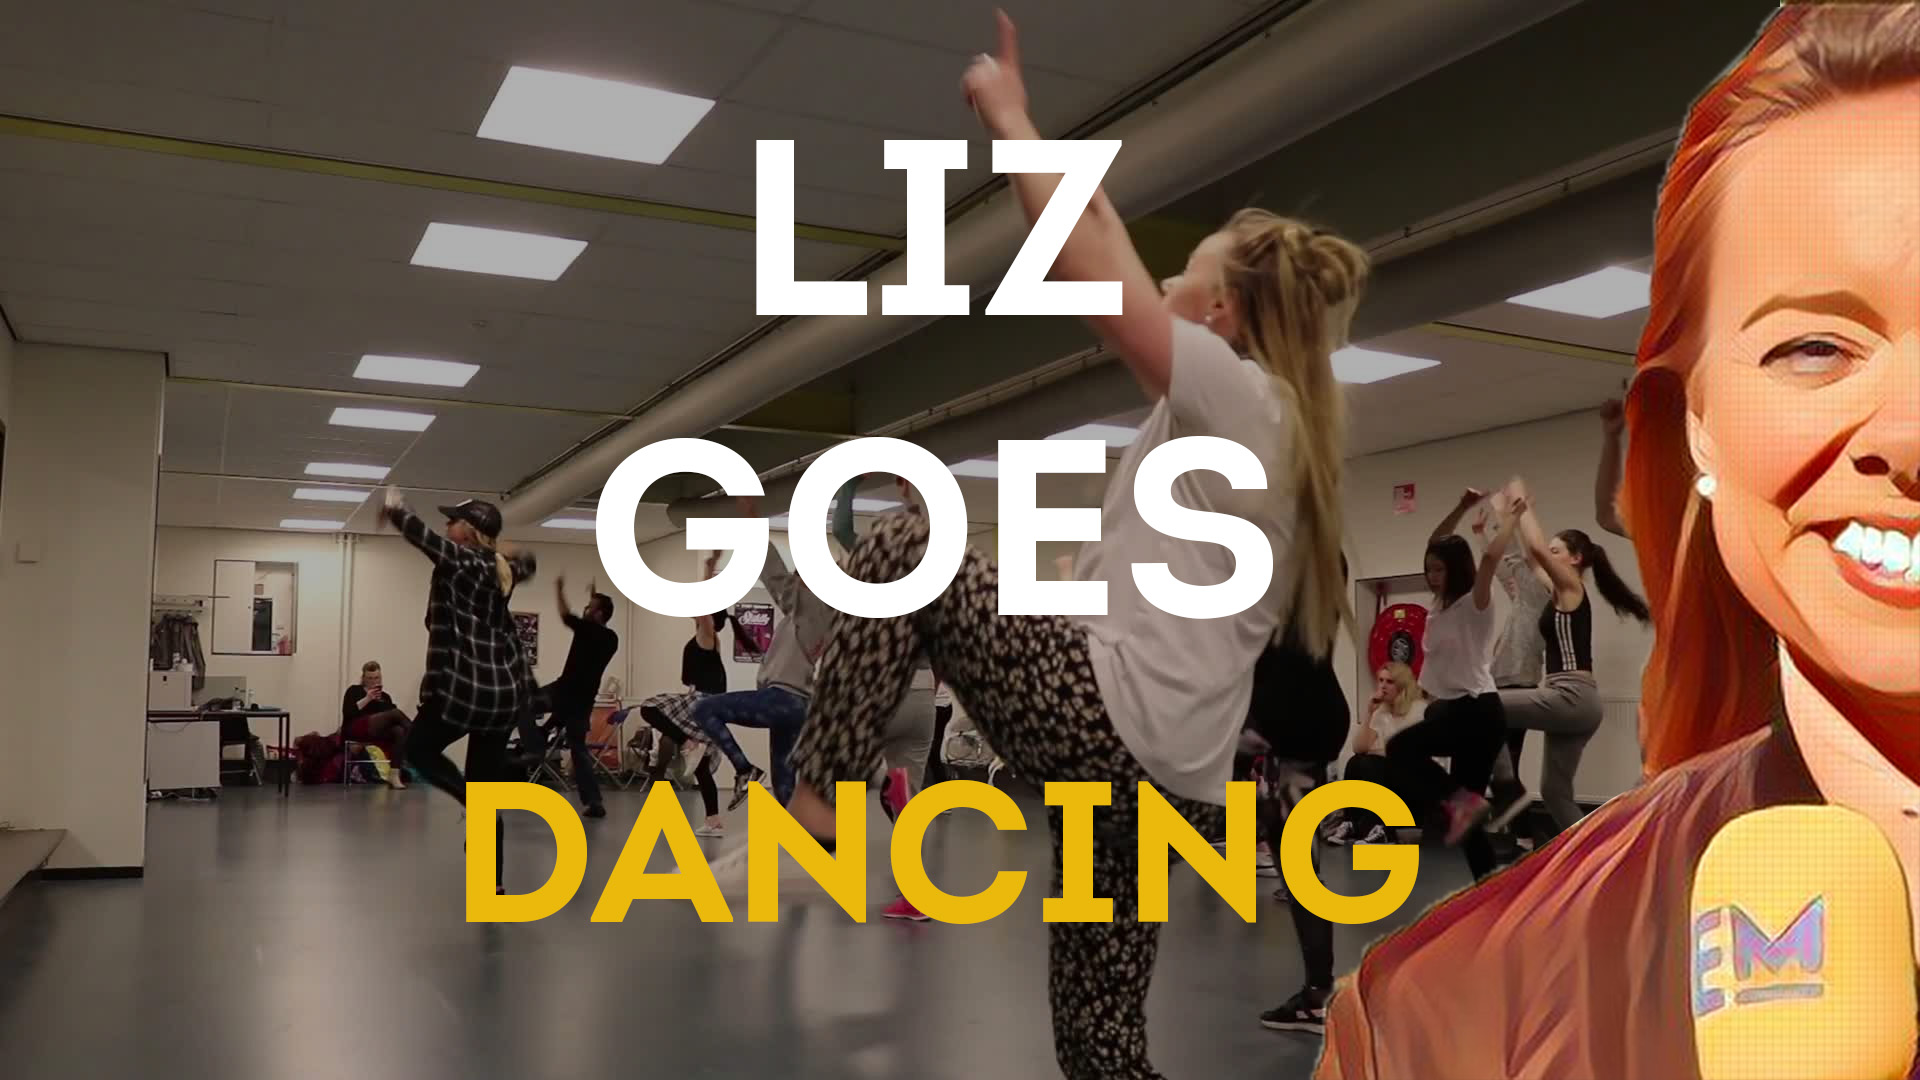 liz goes dancing